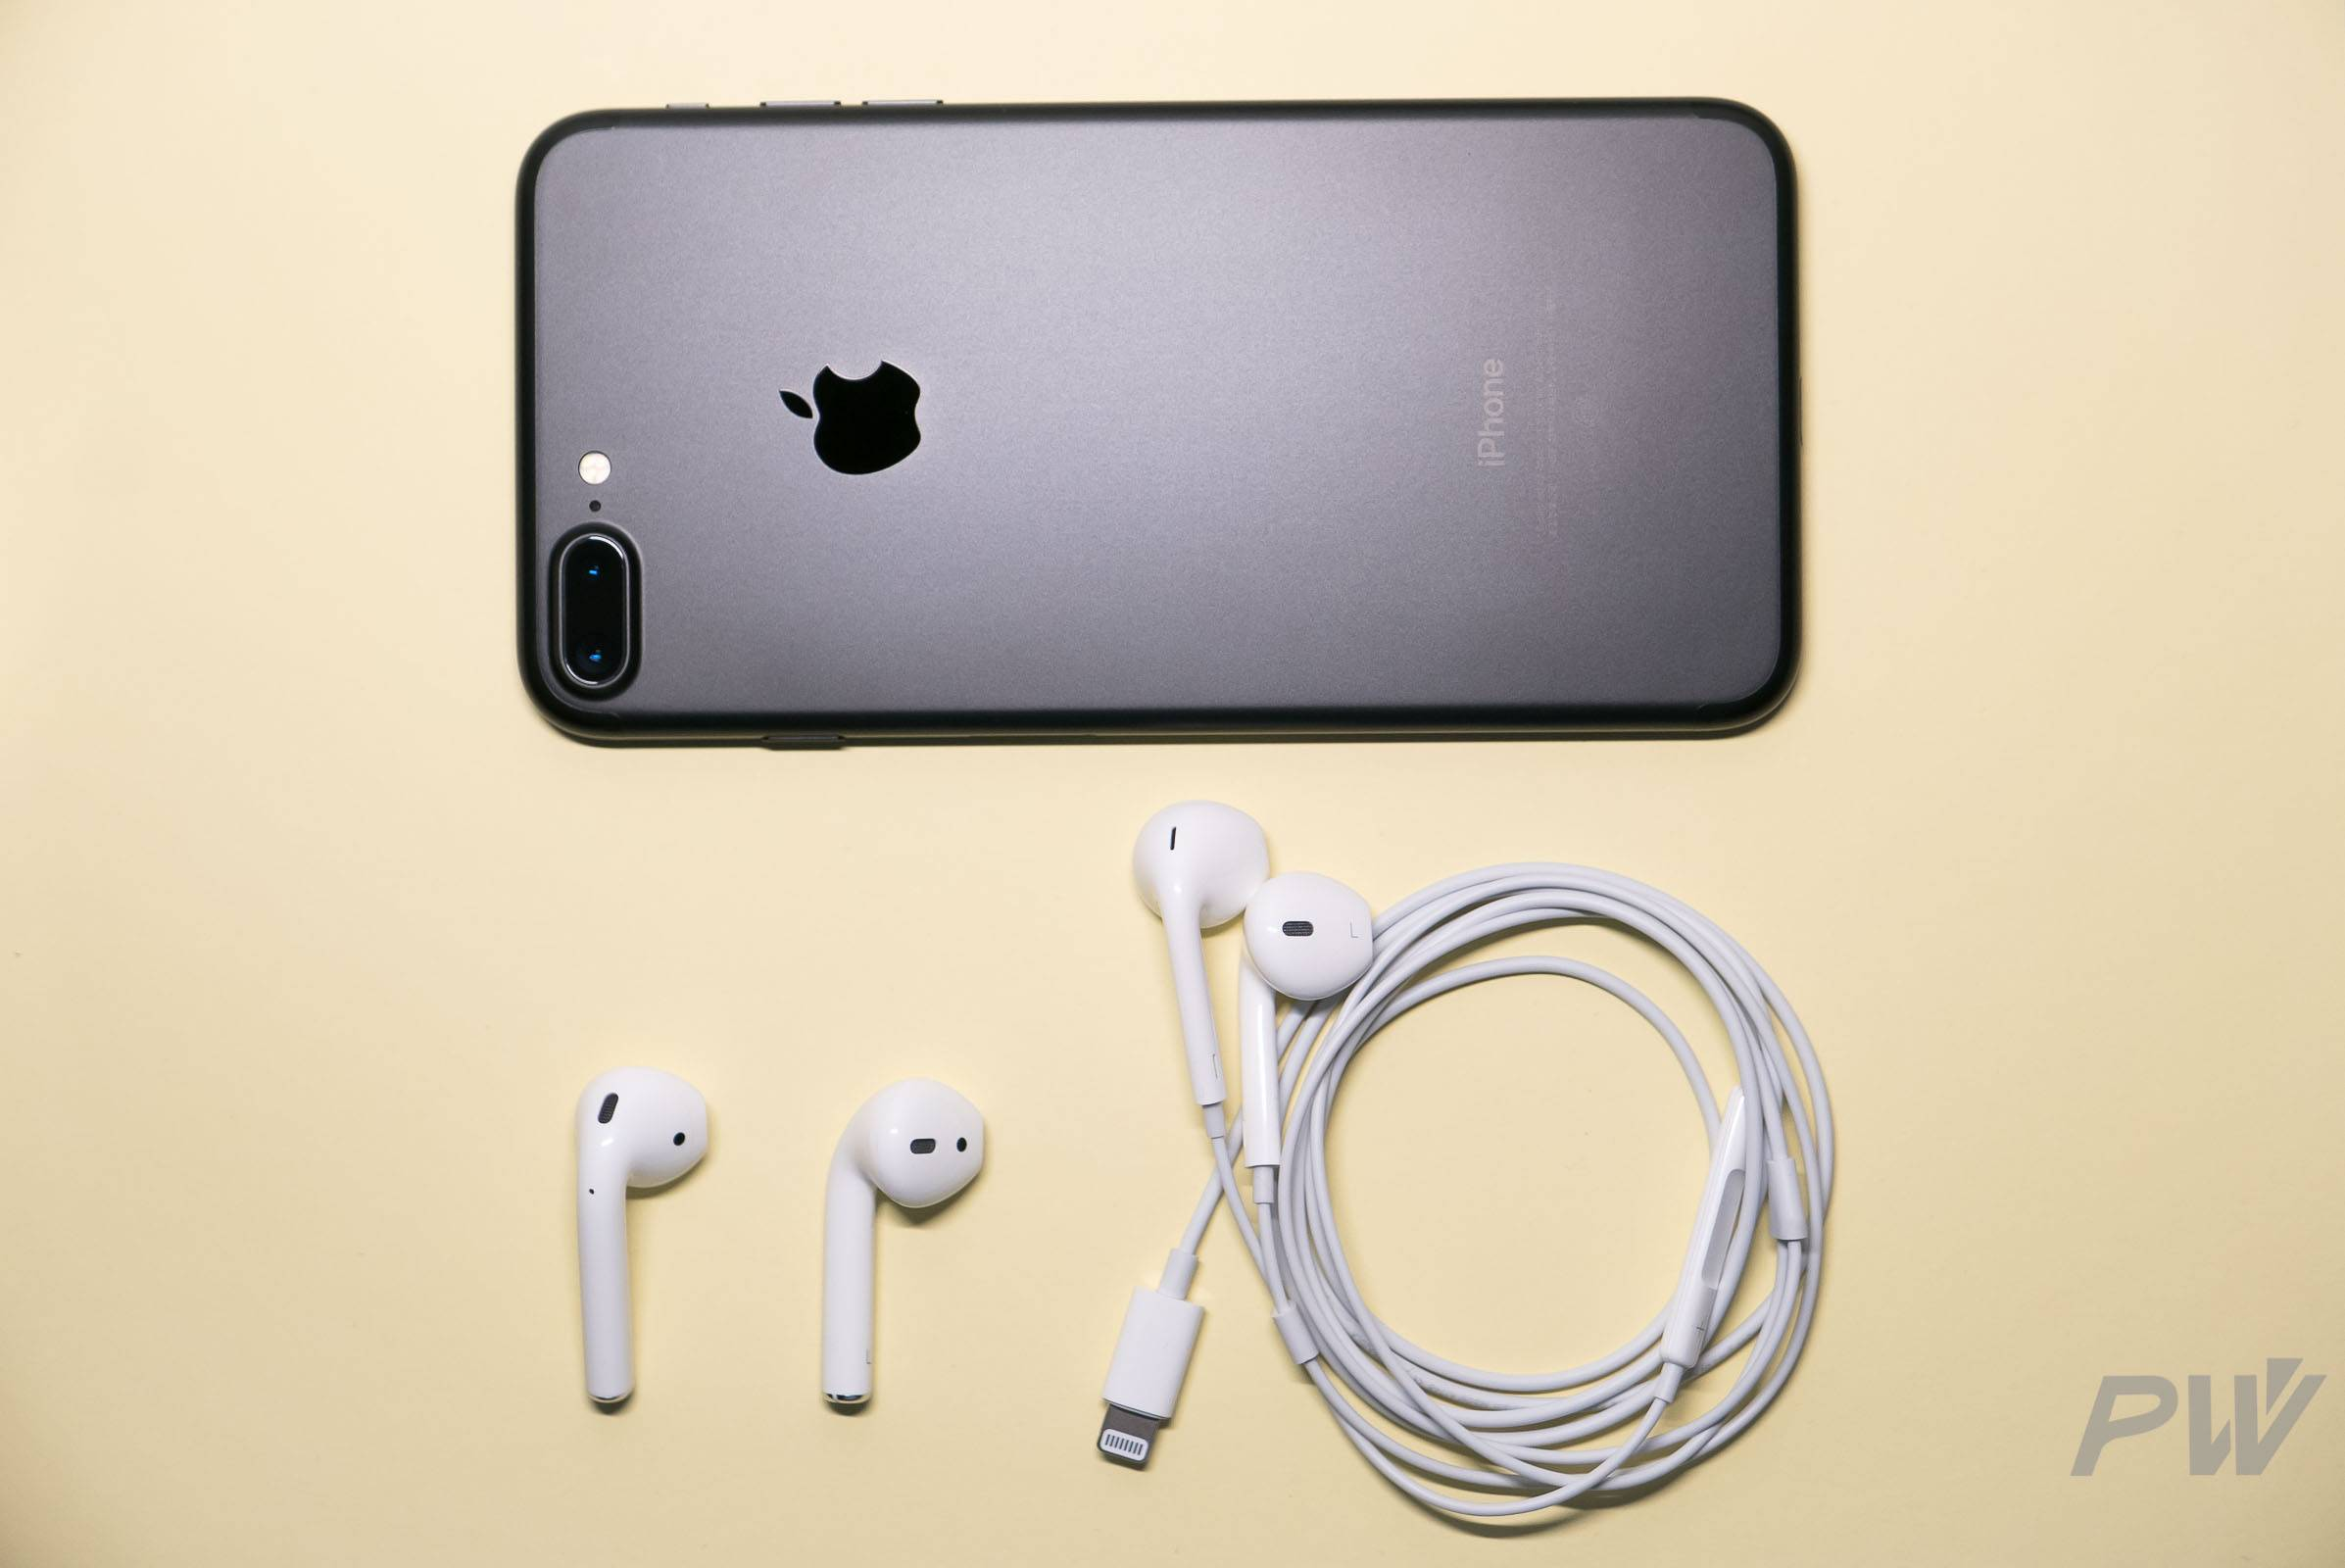 Apple AirPods iPhone 7 Plus Photo By Hao Ying-7